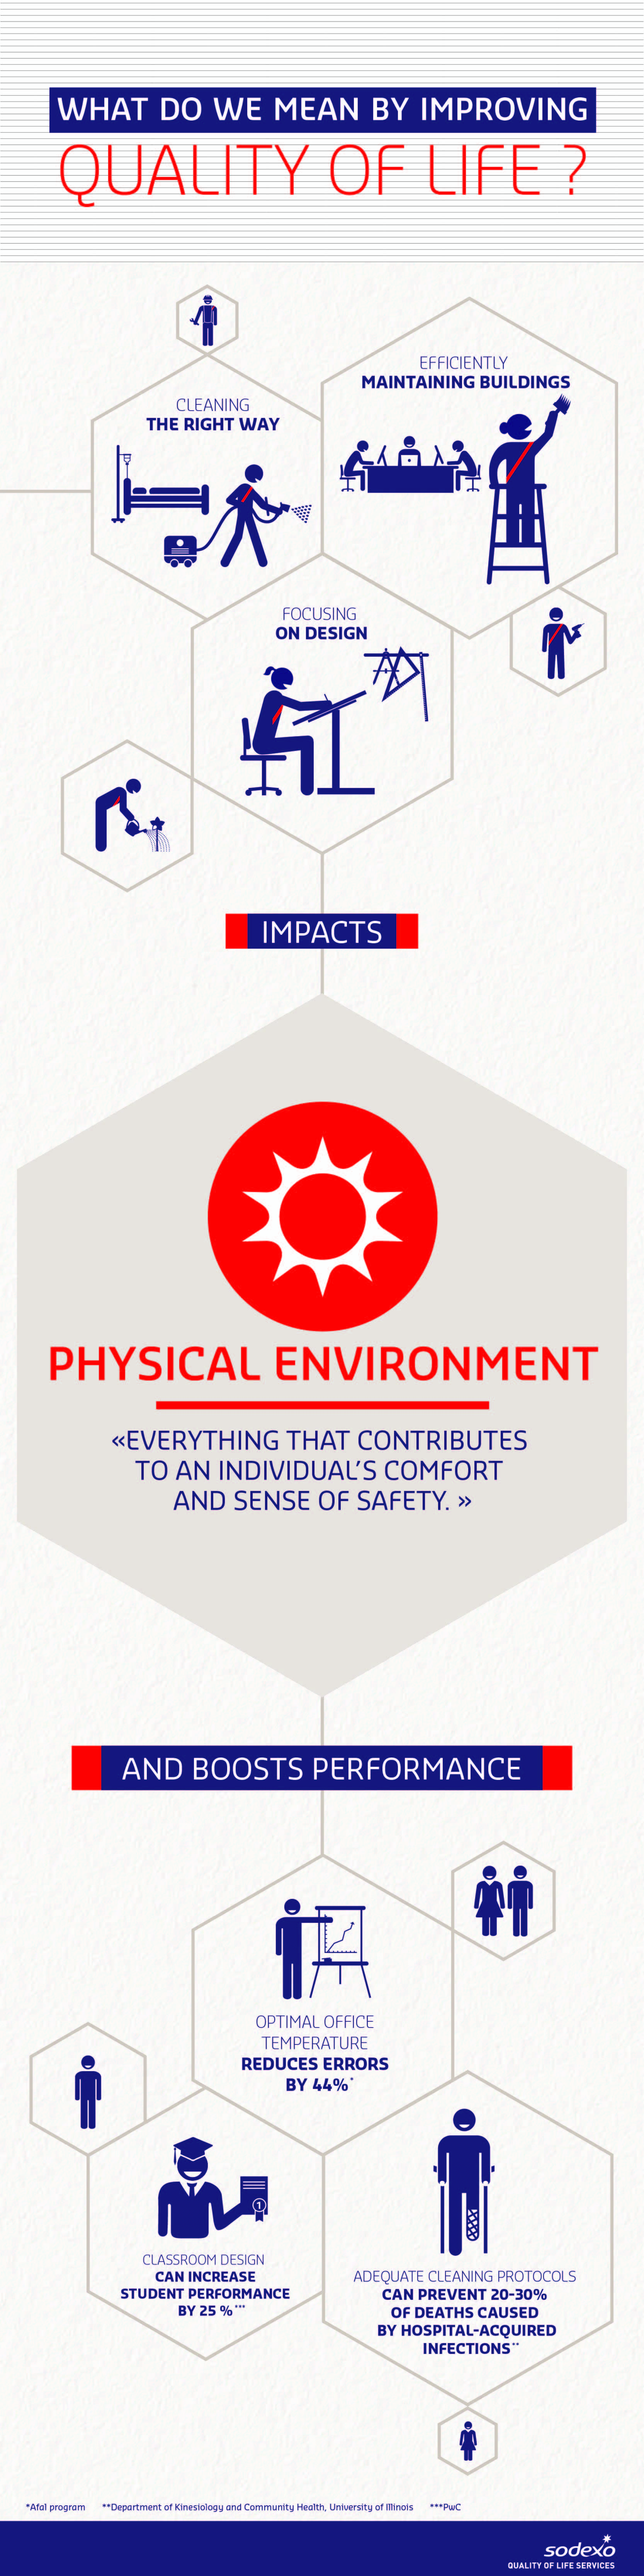 Quality of Life Dimension - Physical Environnement (infographic)